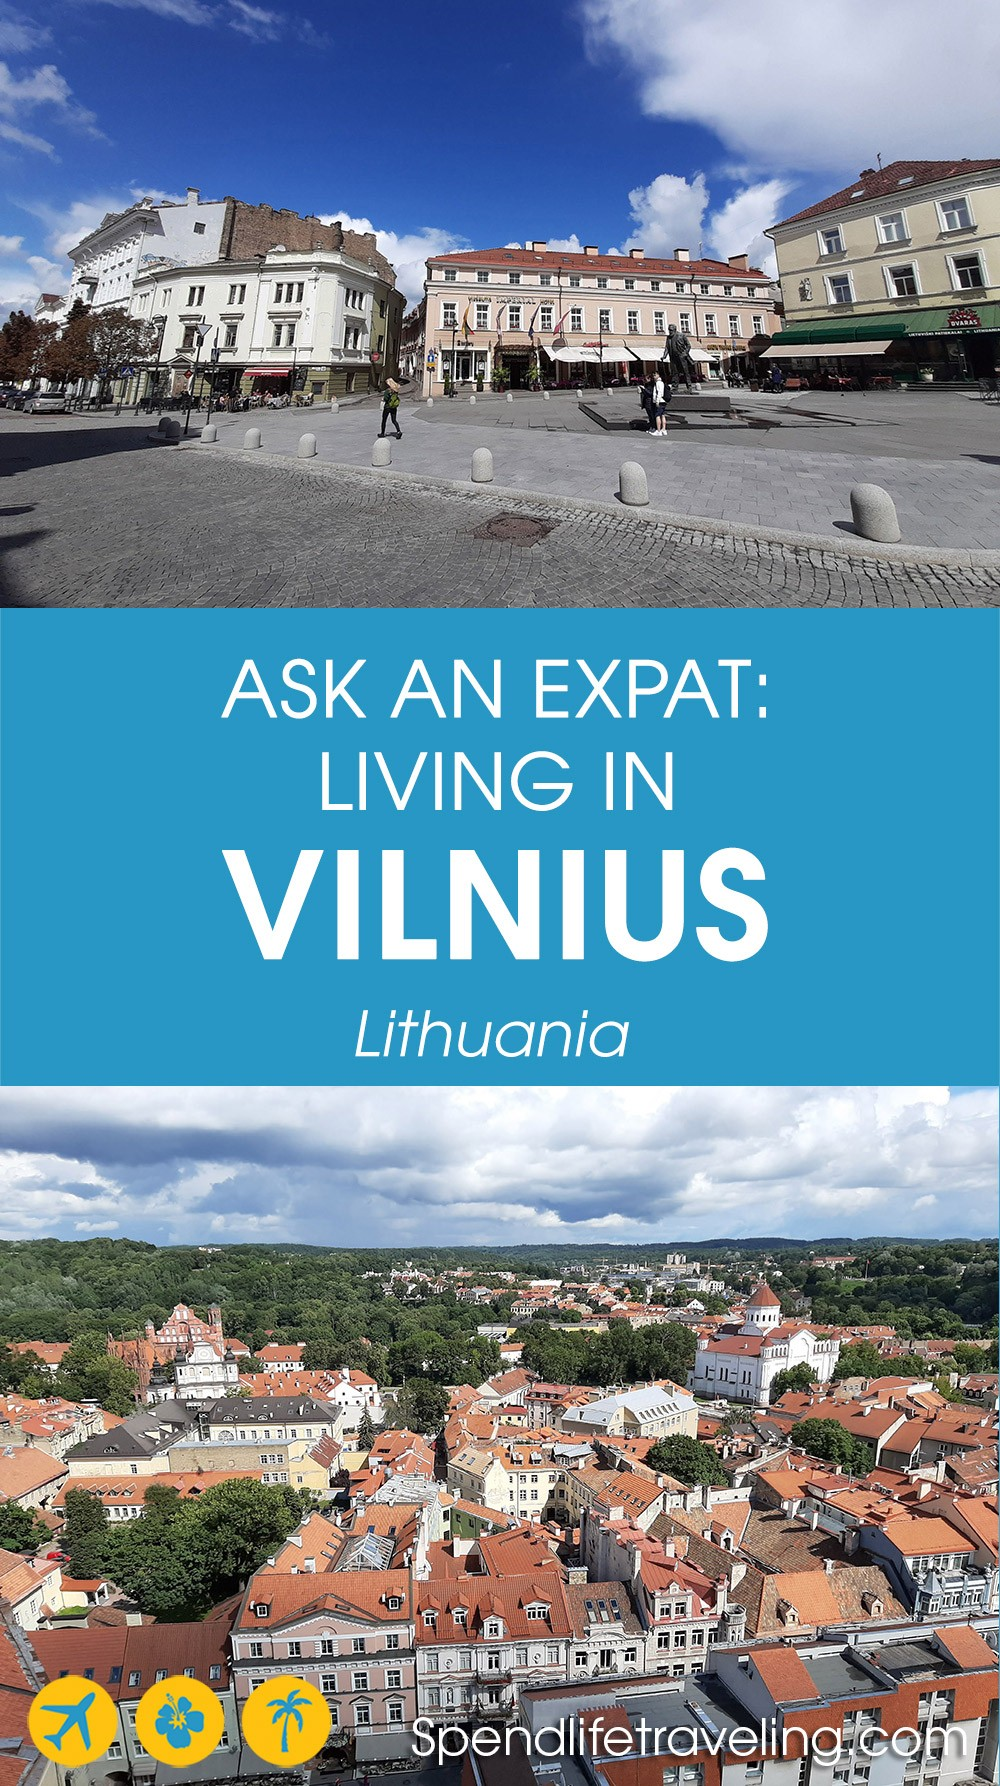 Interview with an expat about moving to and living in #Vilnius, Lithuania. #expatlife #moveabroad #lifeabroad